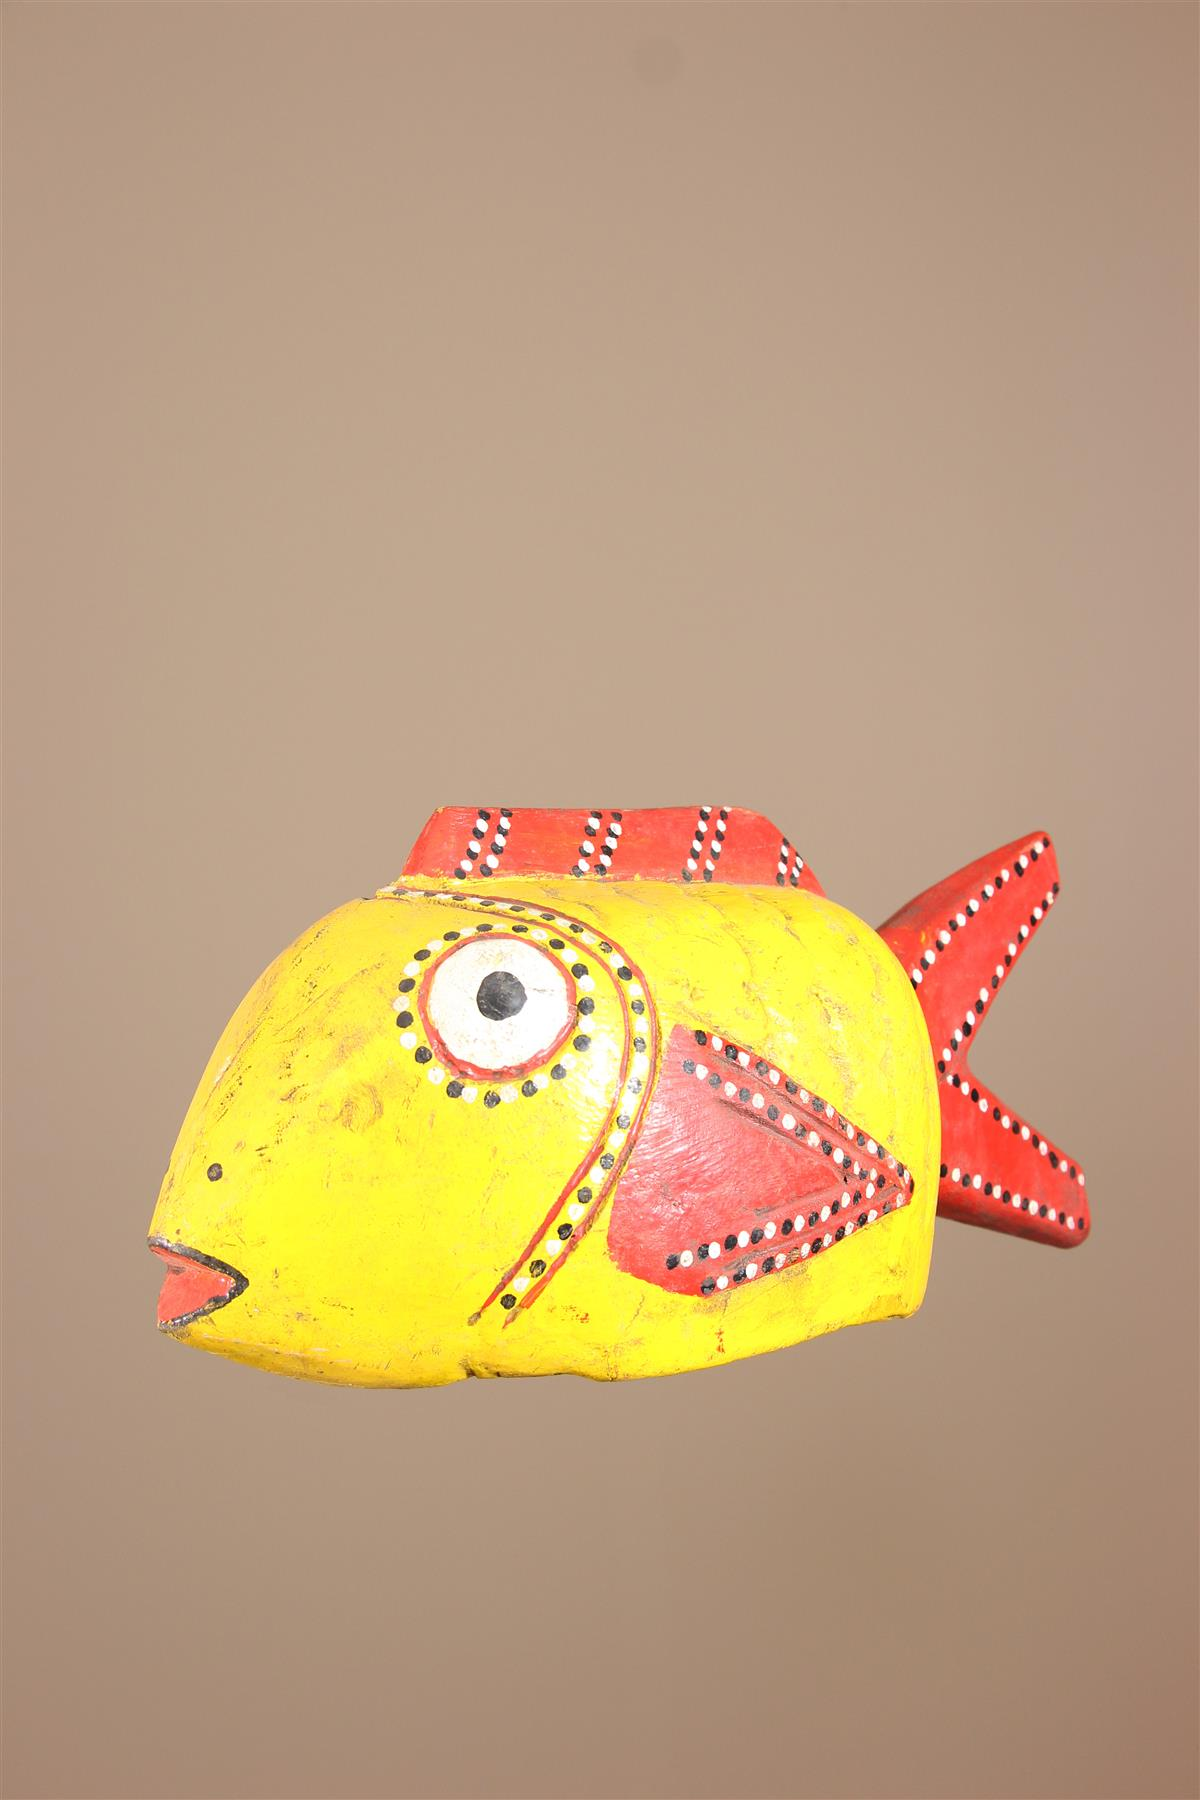 Poisson Bozo - Déco africaine - Art africain traditionnel